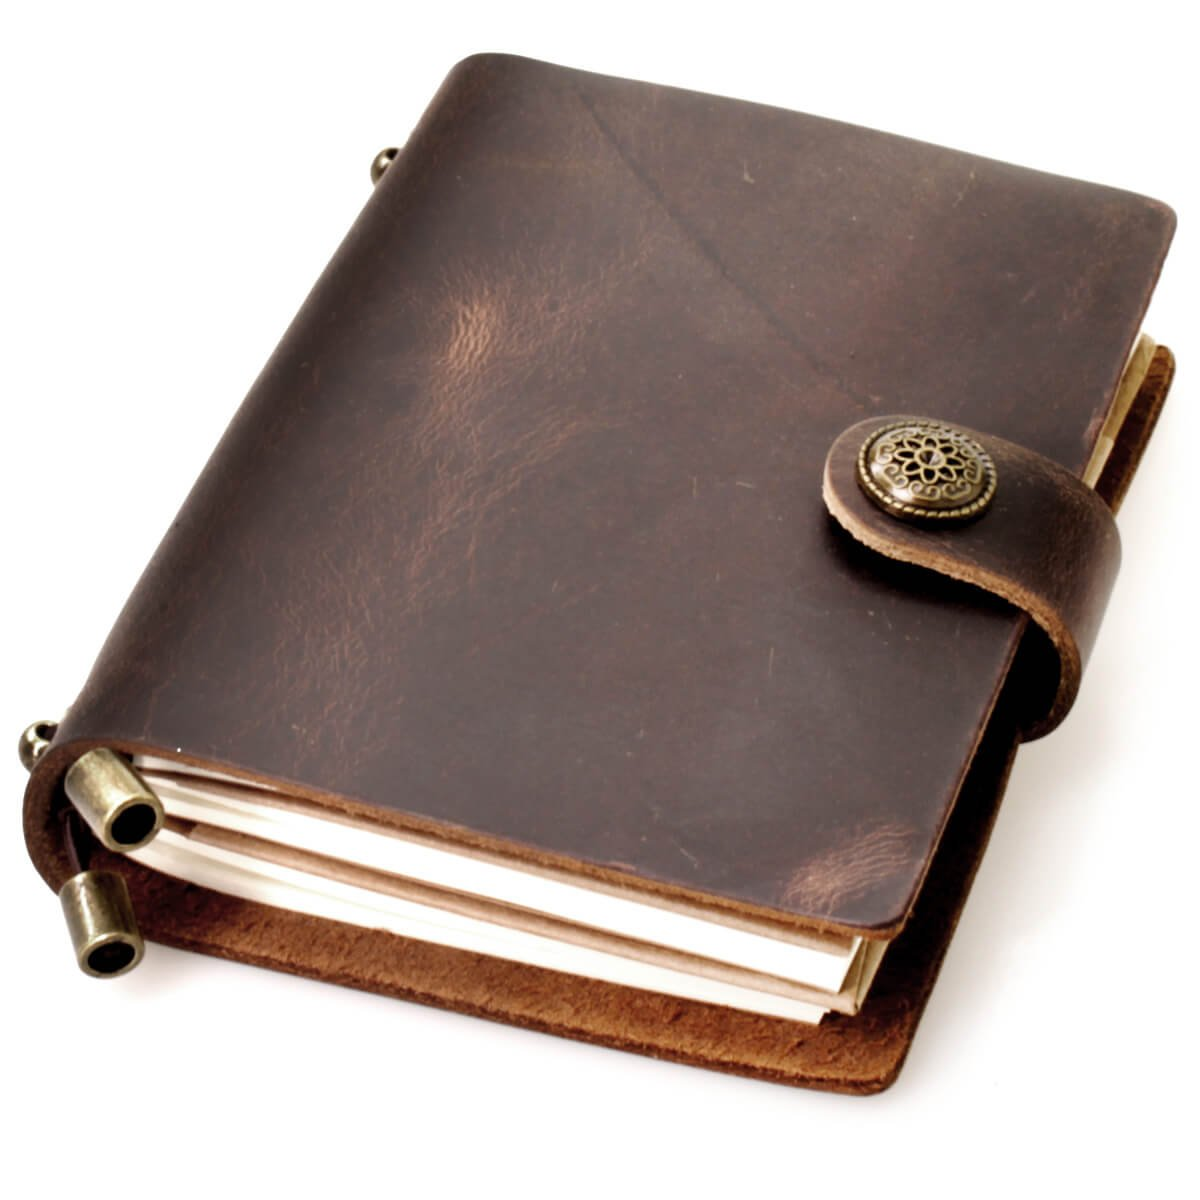 CONE Travel Leather Diary Notebook 5.5x4.3x1.2 inch, Brown, Pack of 1 ÿ